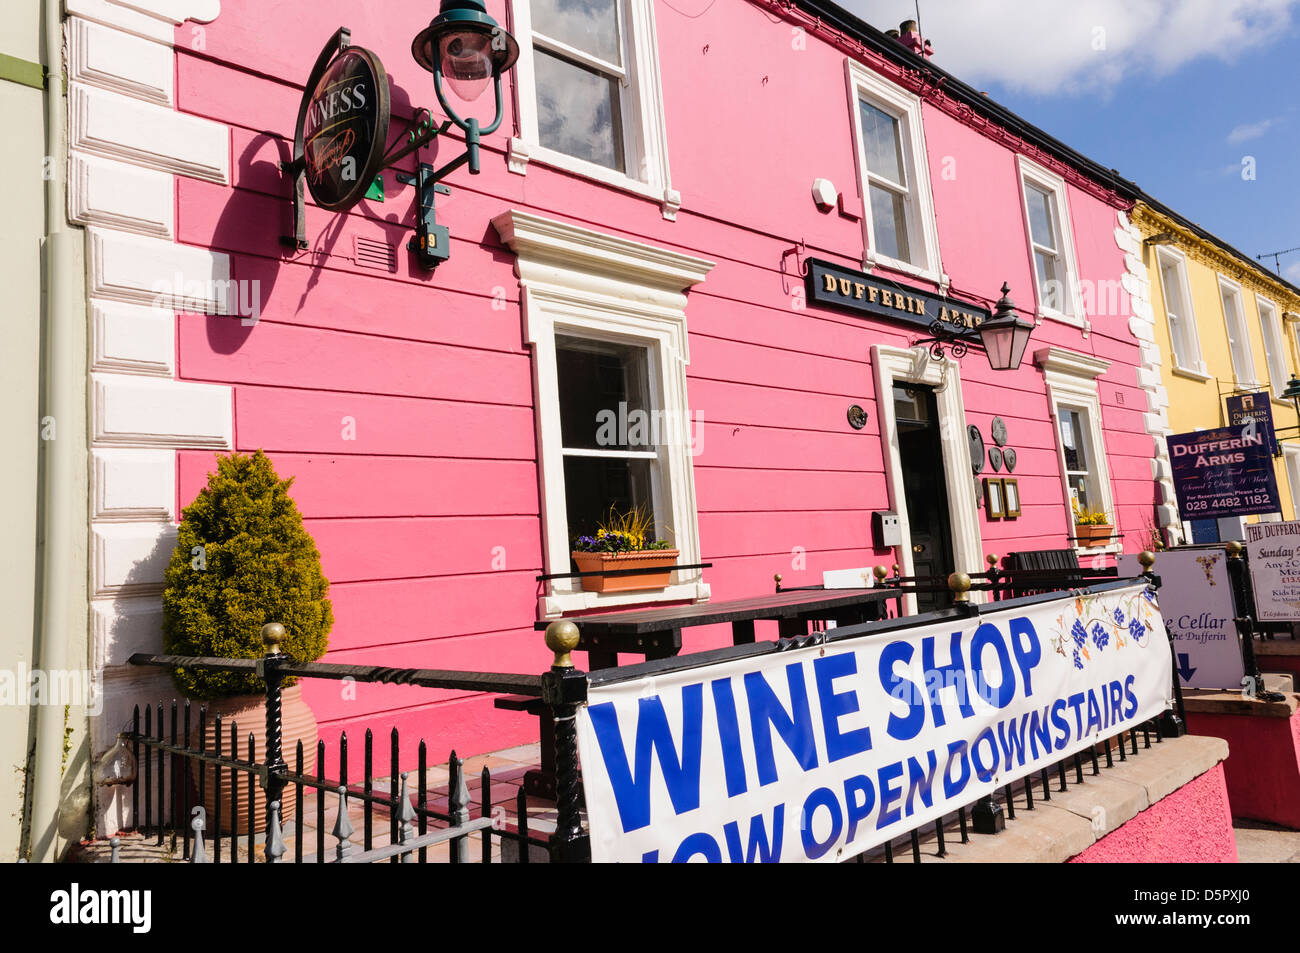 Dufferin Arms, Killyleagh - Stock Image